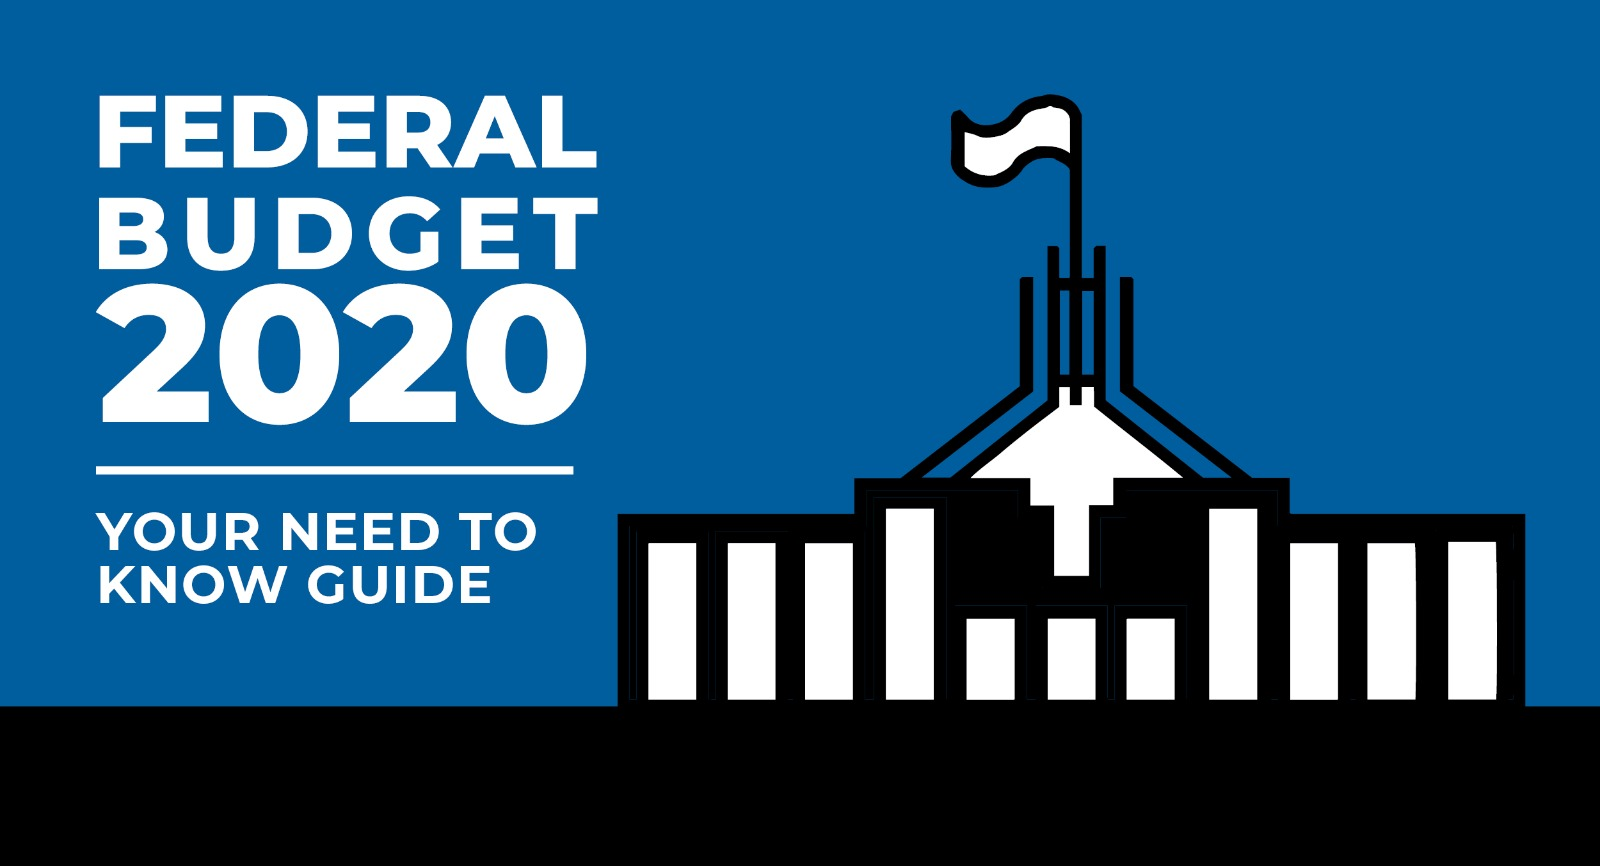 Federal Budget 2020 Small Businesses